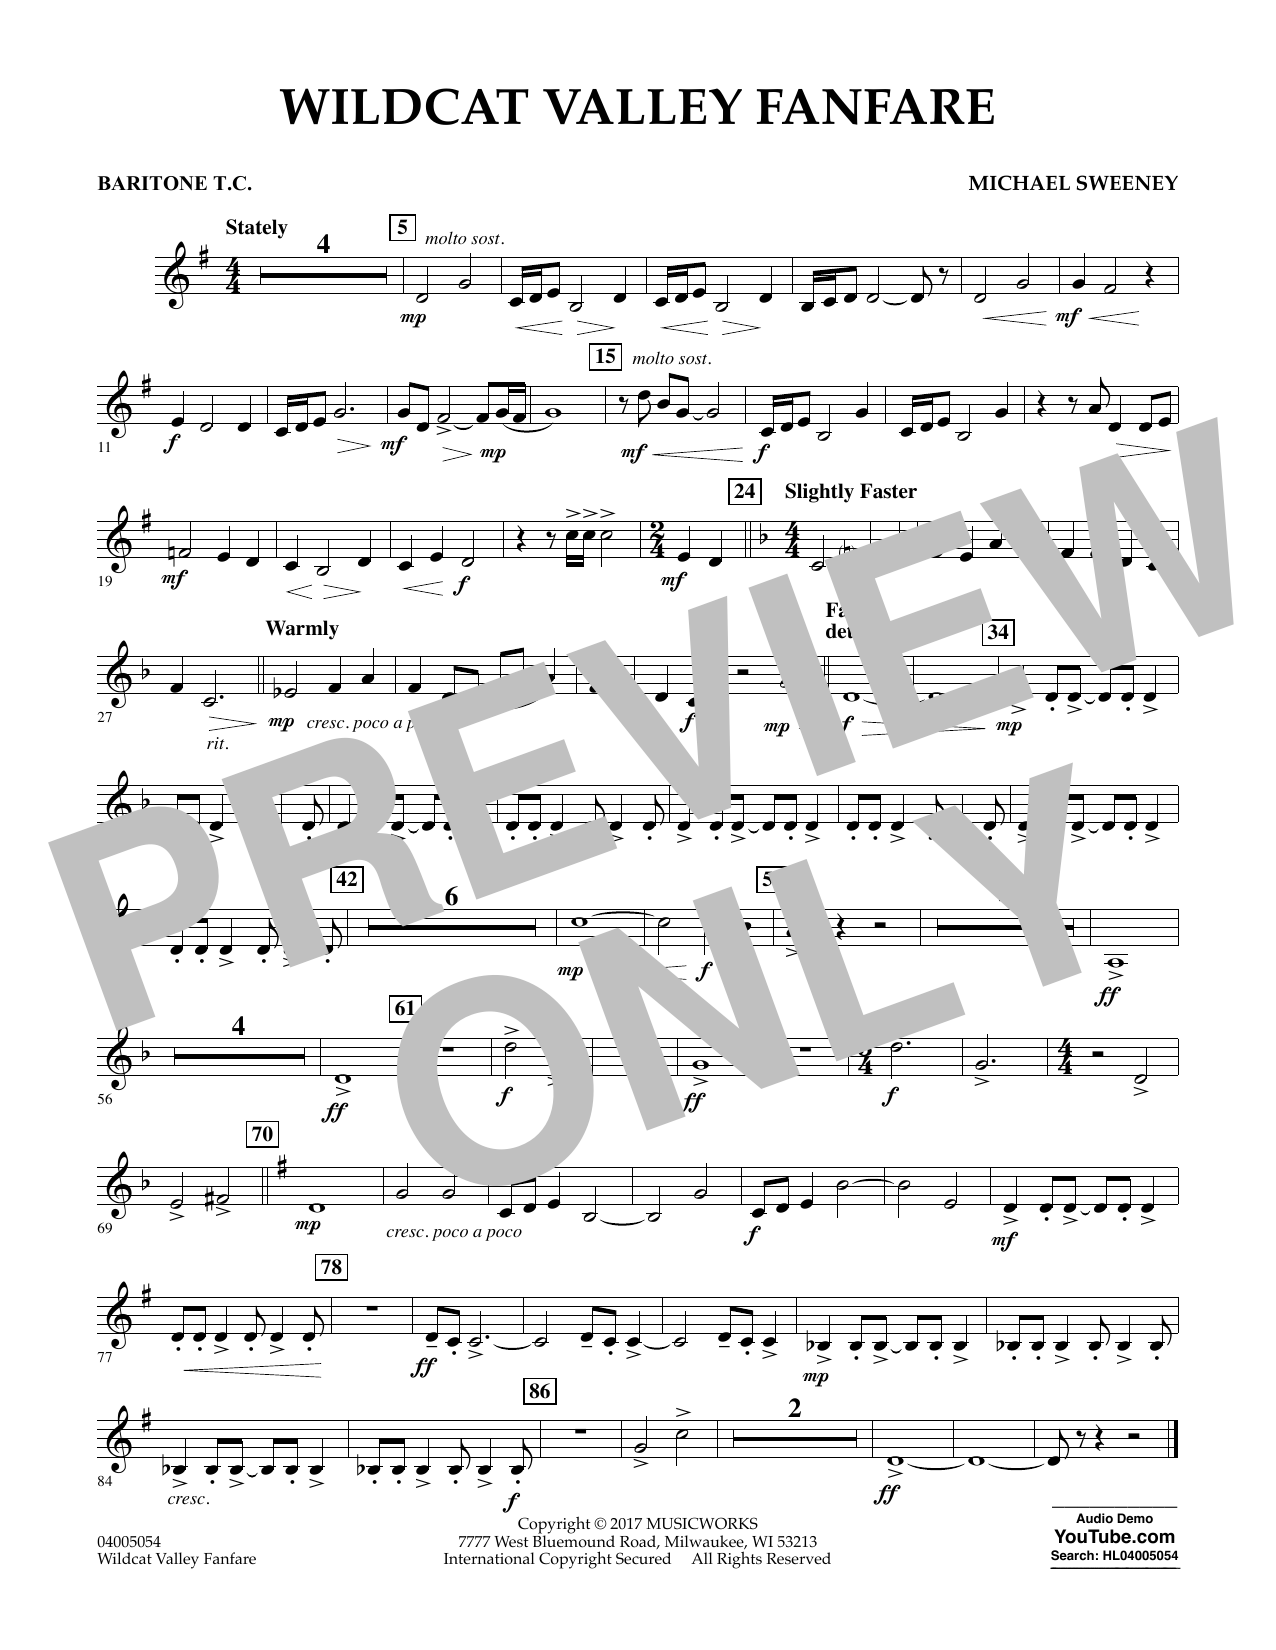 Wildcat Valley Fanfare - Baritone T.C. Sheet Music